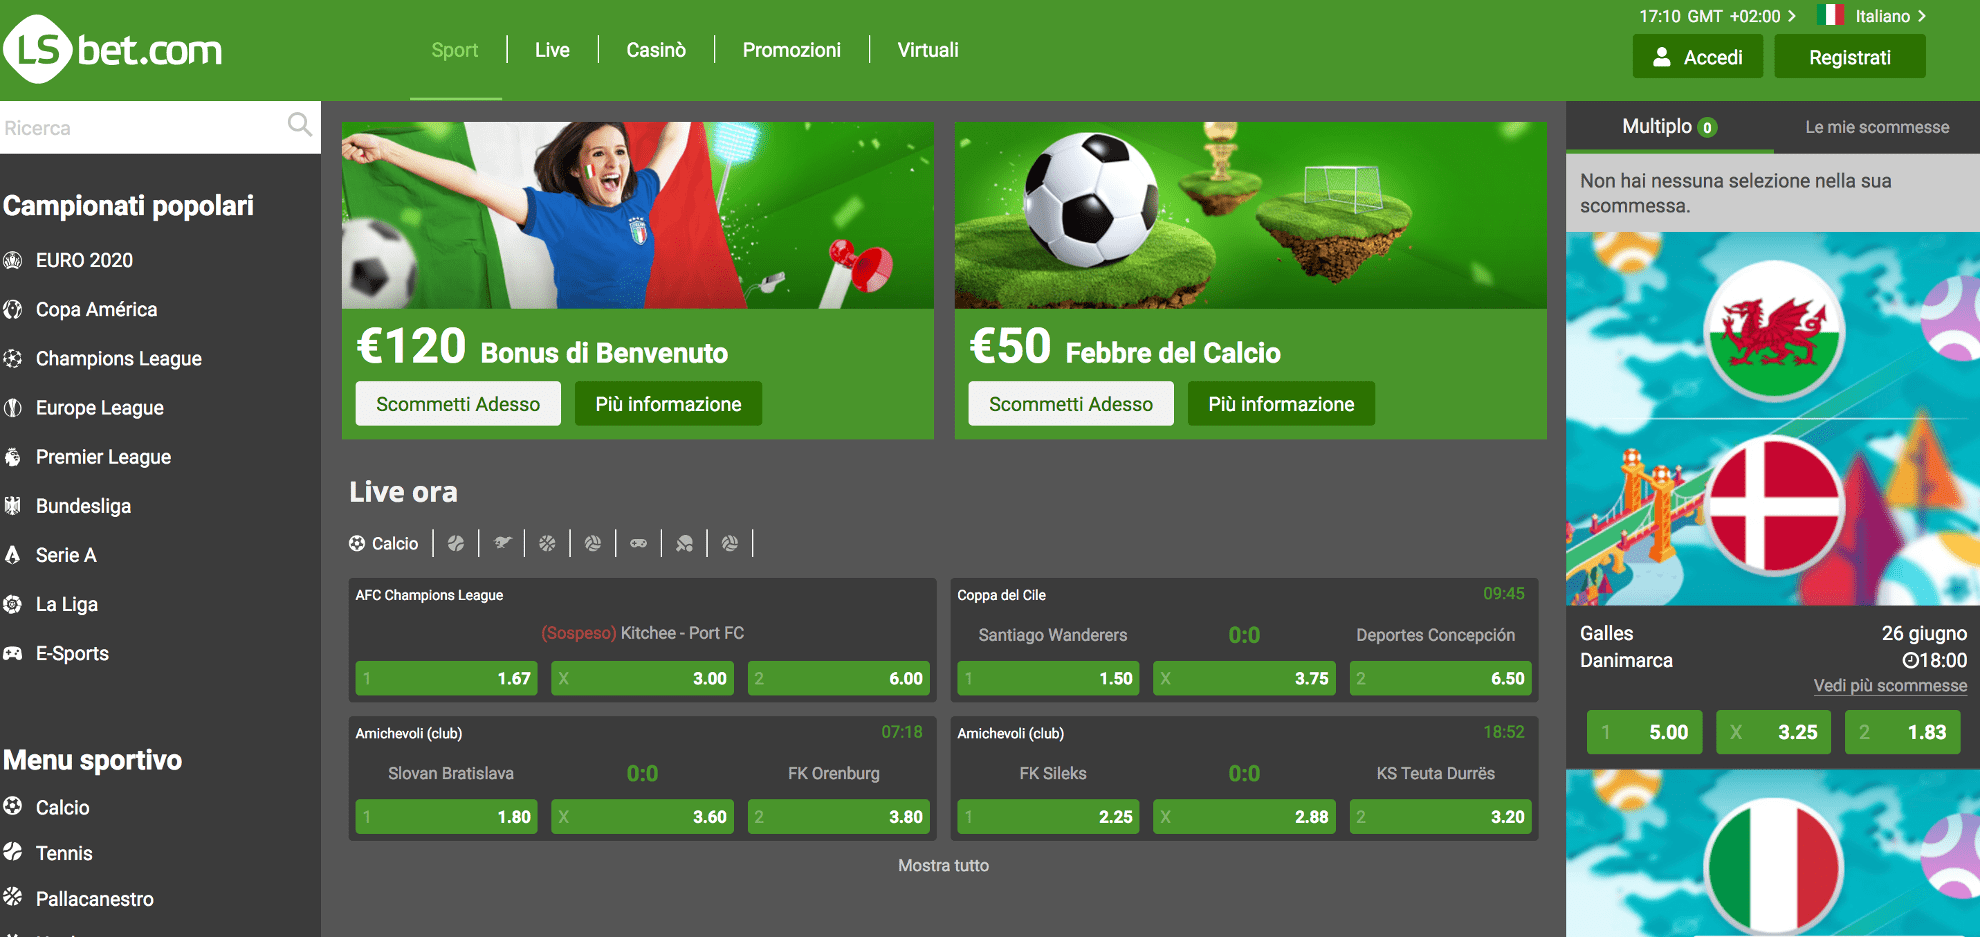 Lsbet sito scommesse non aams